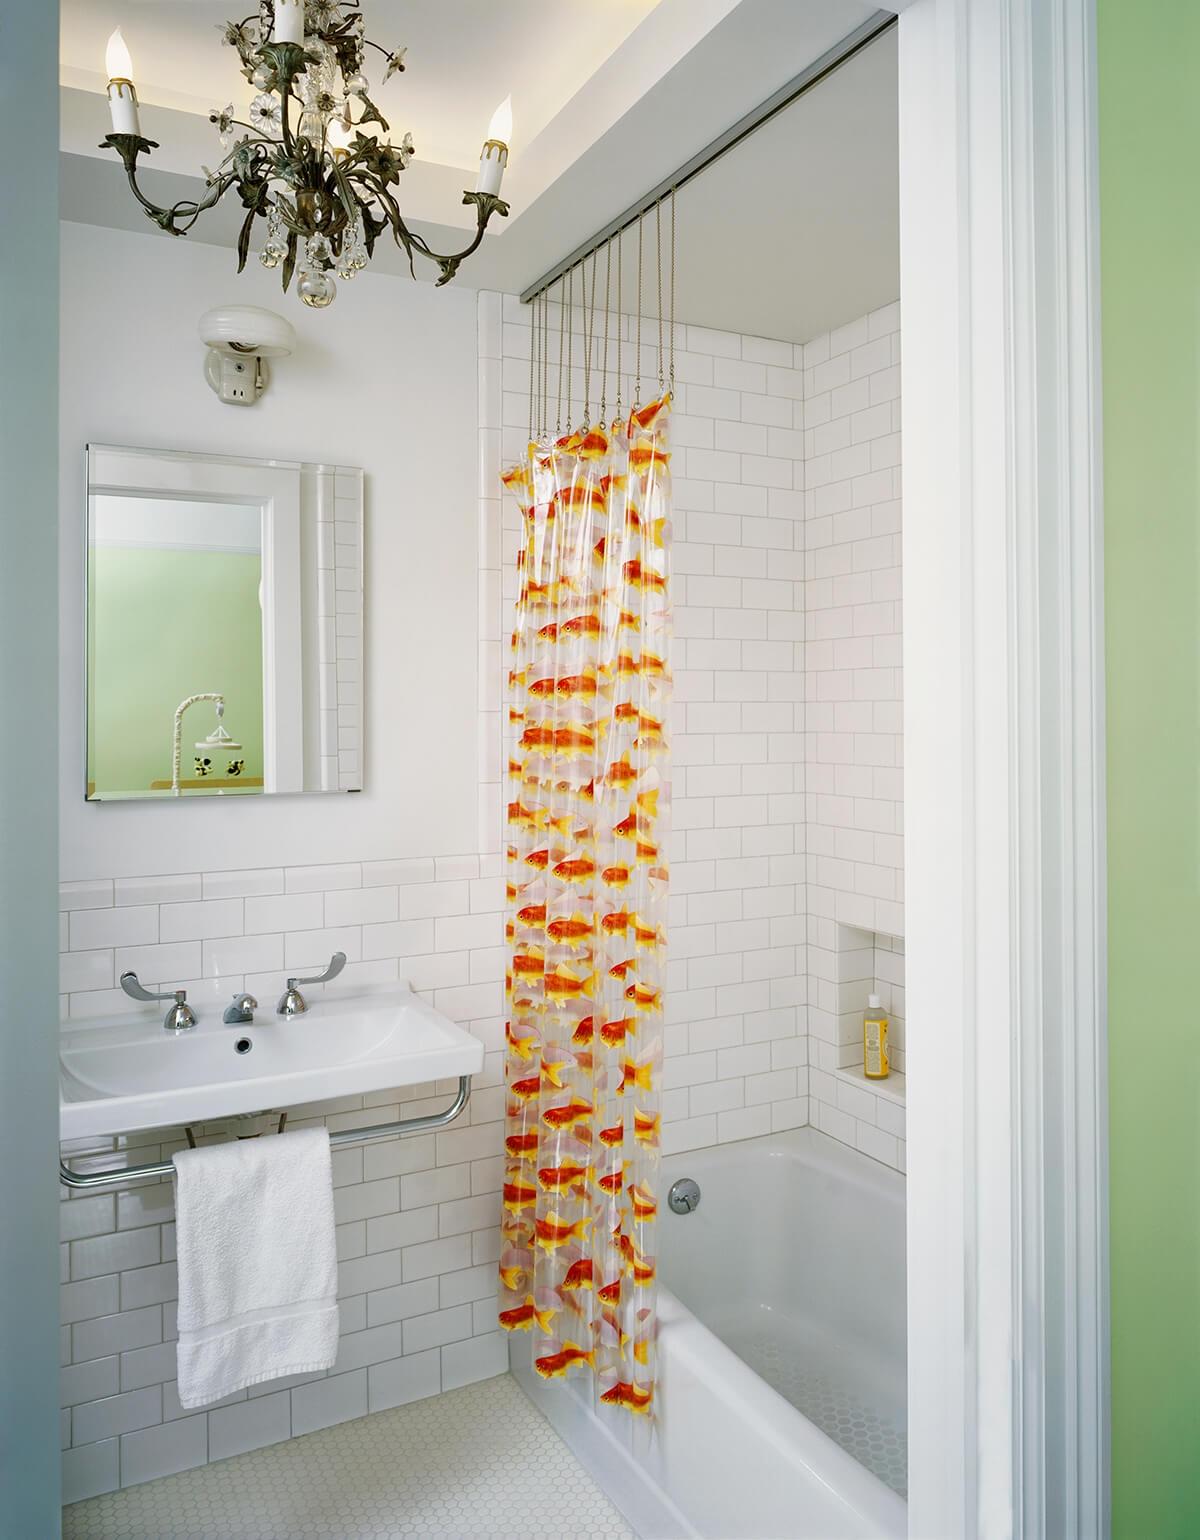 ceiling alcove for vintage chandelier in kids' bathroom